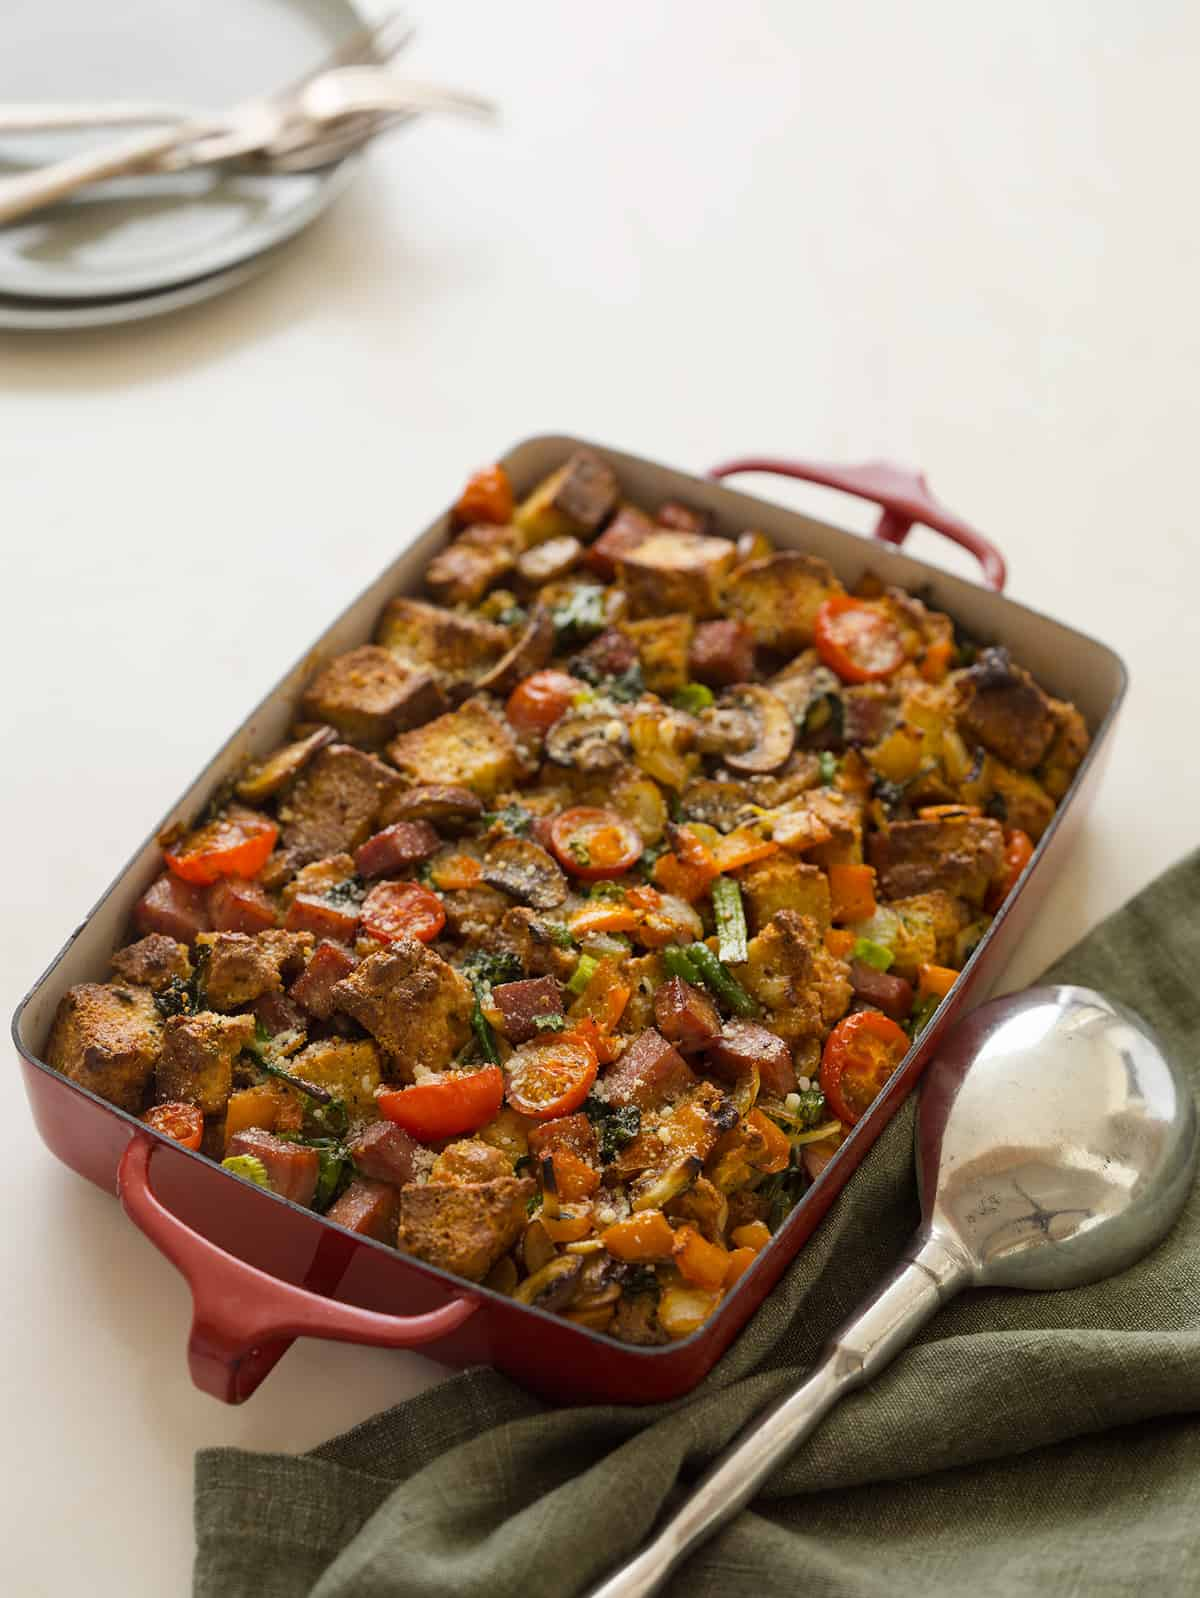 A baking pan of savory bread pudding with a large serving spoon.